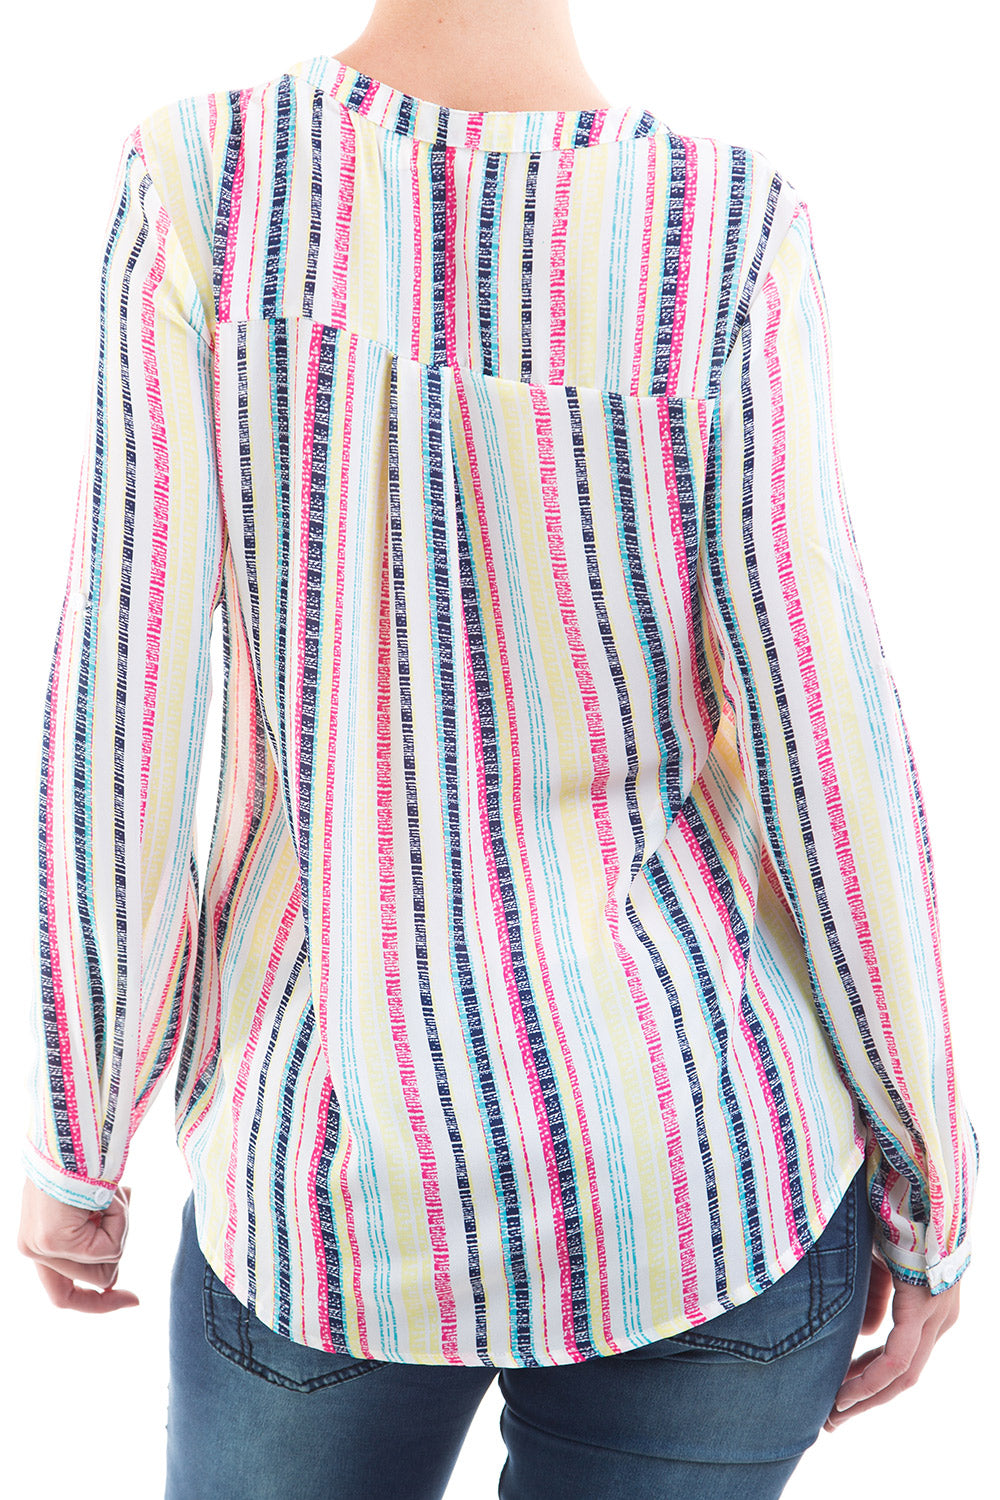 Type 1 Candy Stripes Top